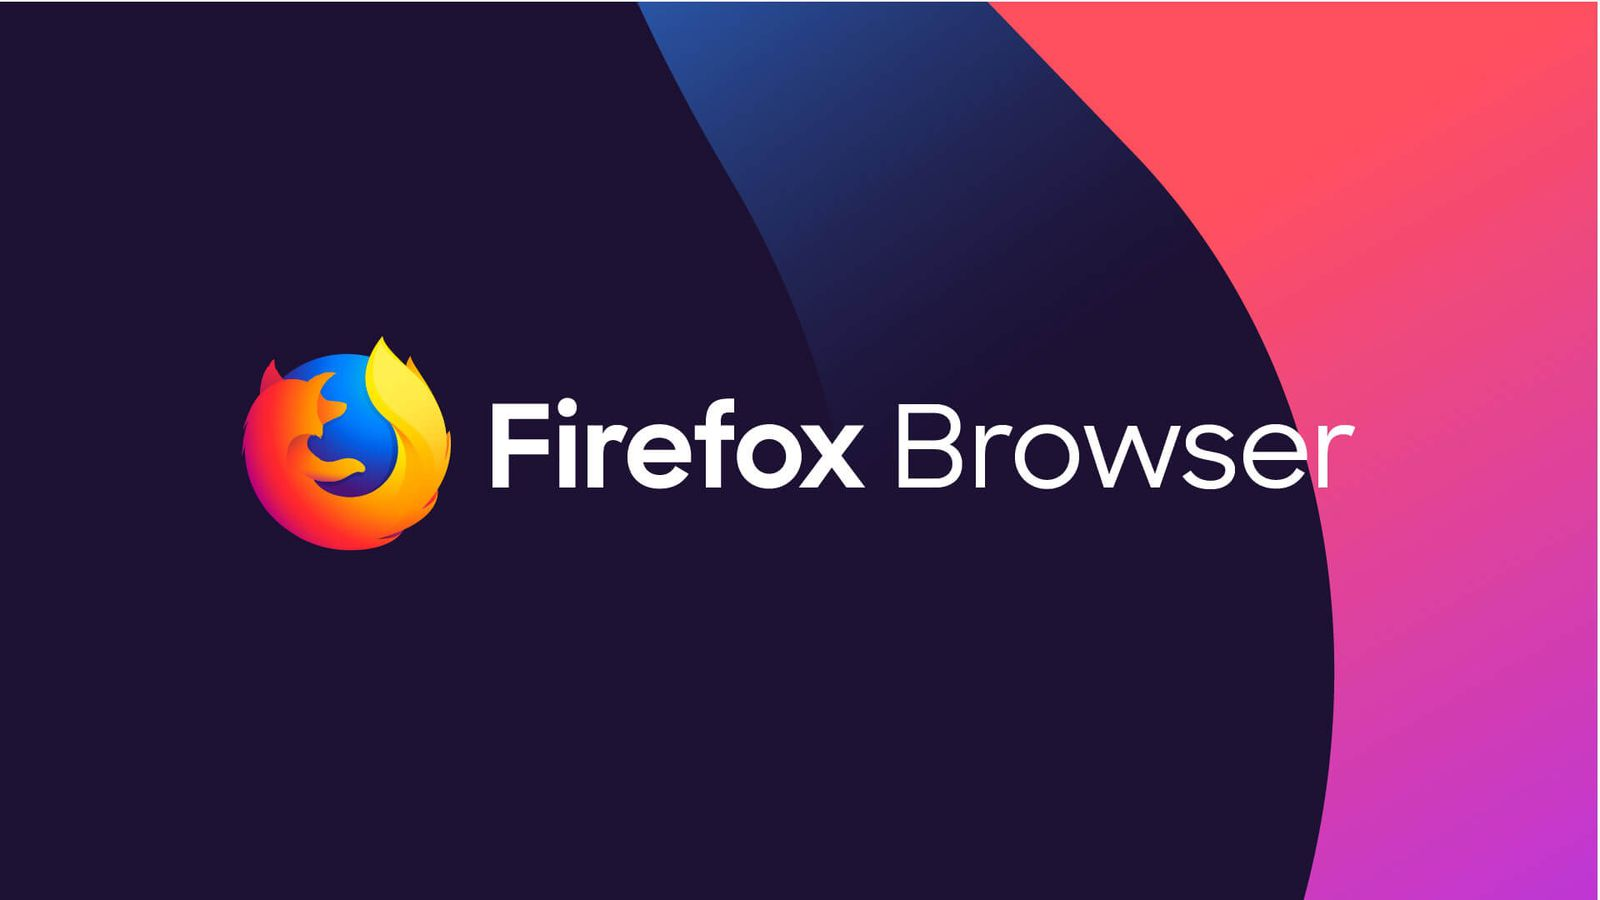 U.S. Department of Homeland Security Urges Firefox Users to Install Update  Amid Active Attack - MacRumors